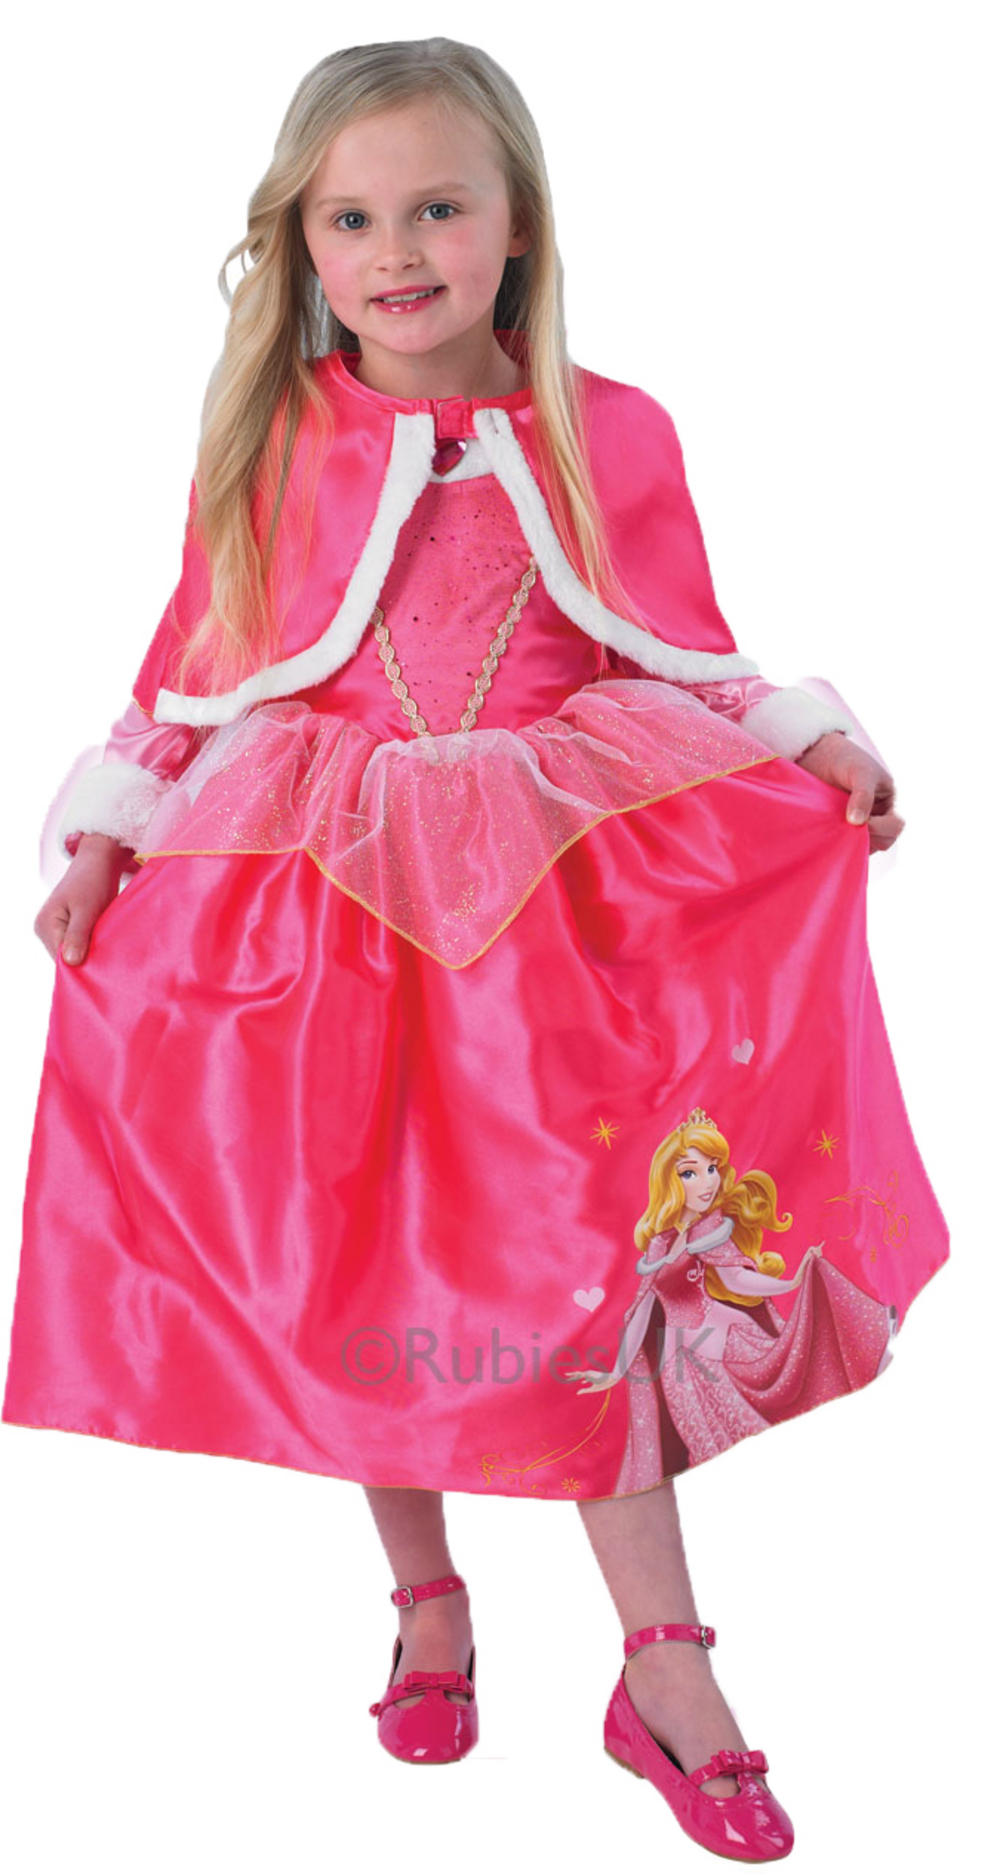 Disney Princess Sleeping Beauty Costume